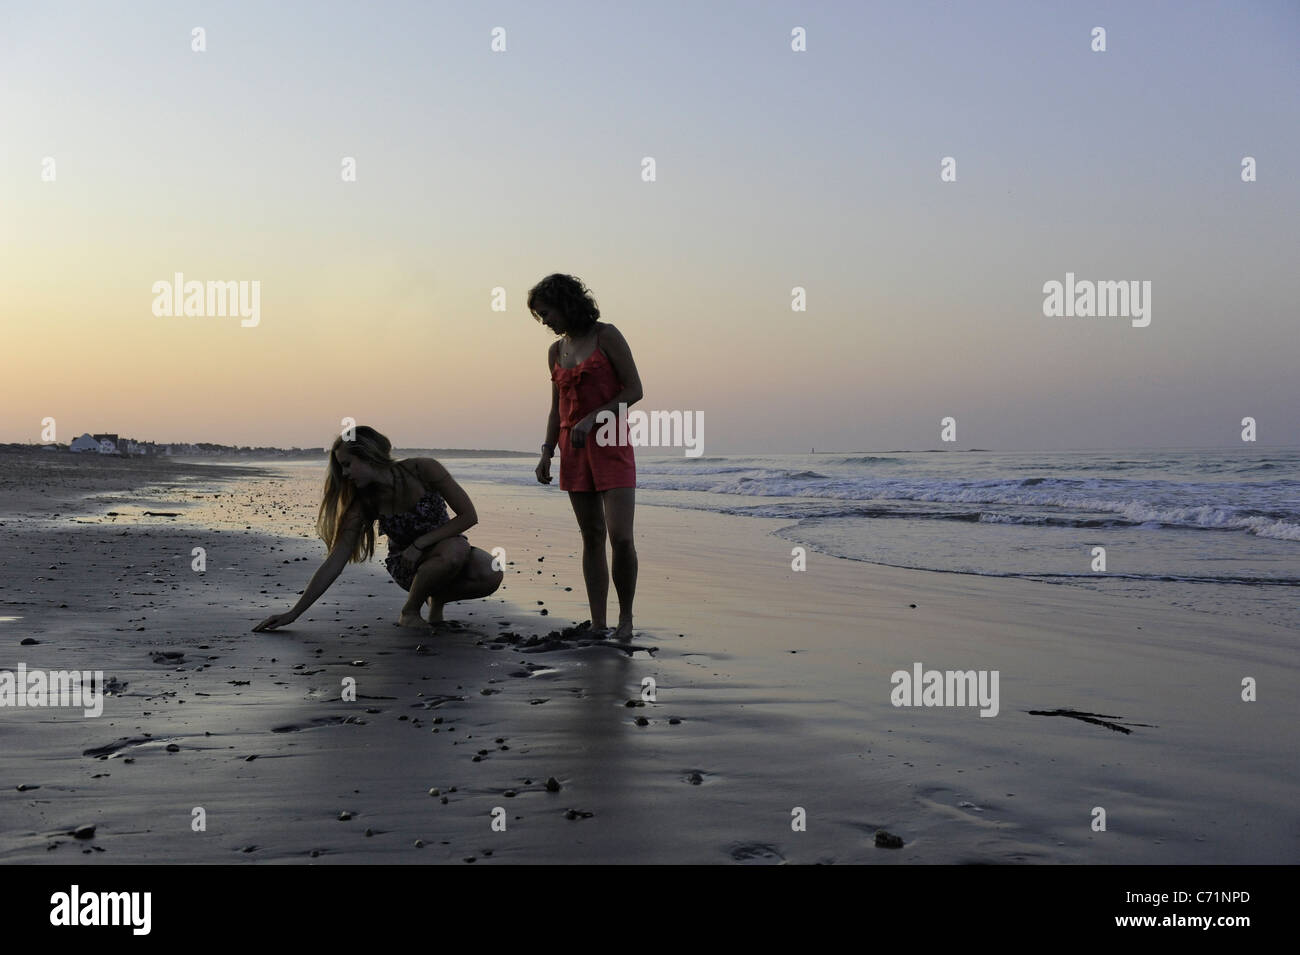 Two young women search for shells at sunset on the beach. - Stock Image